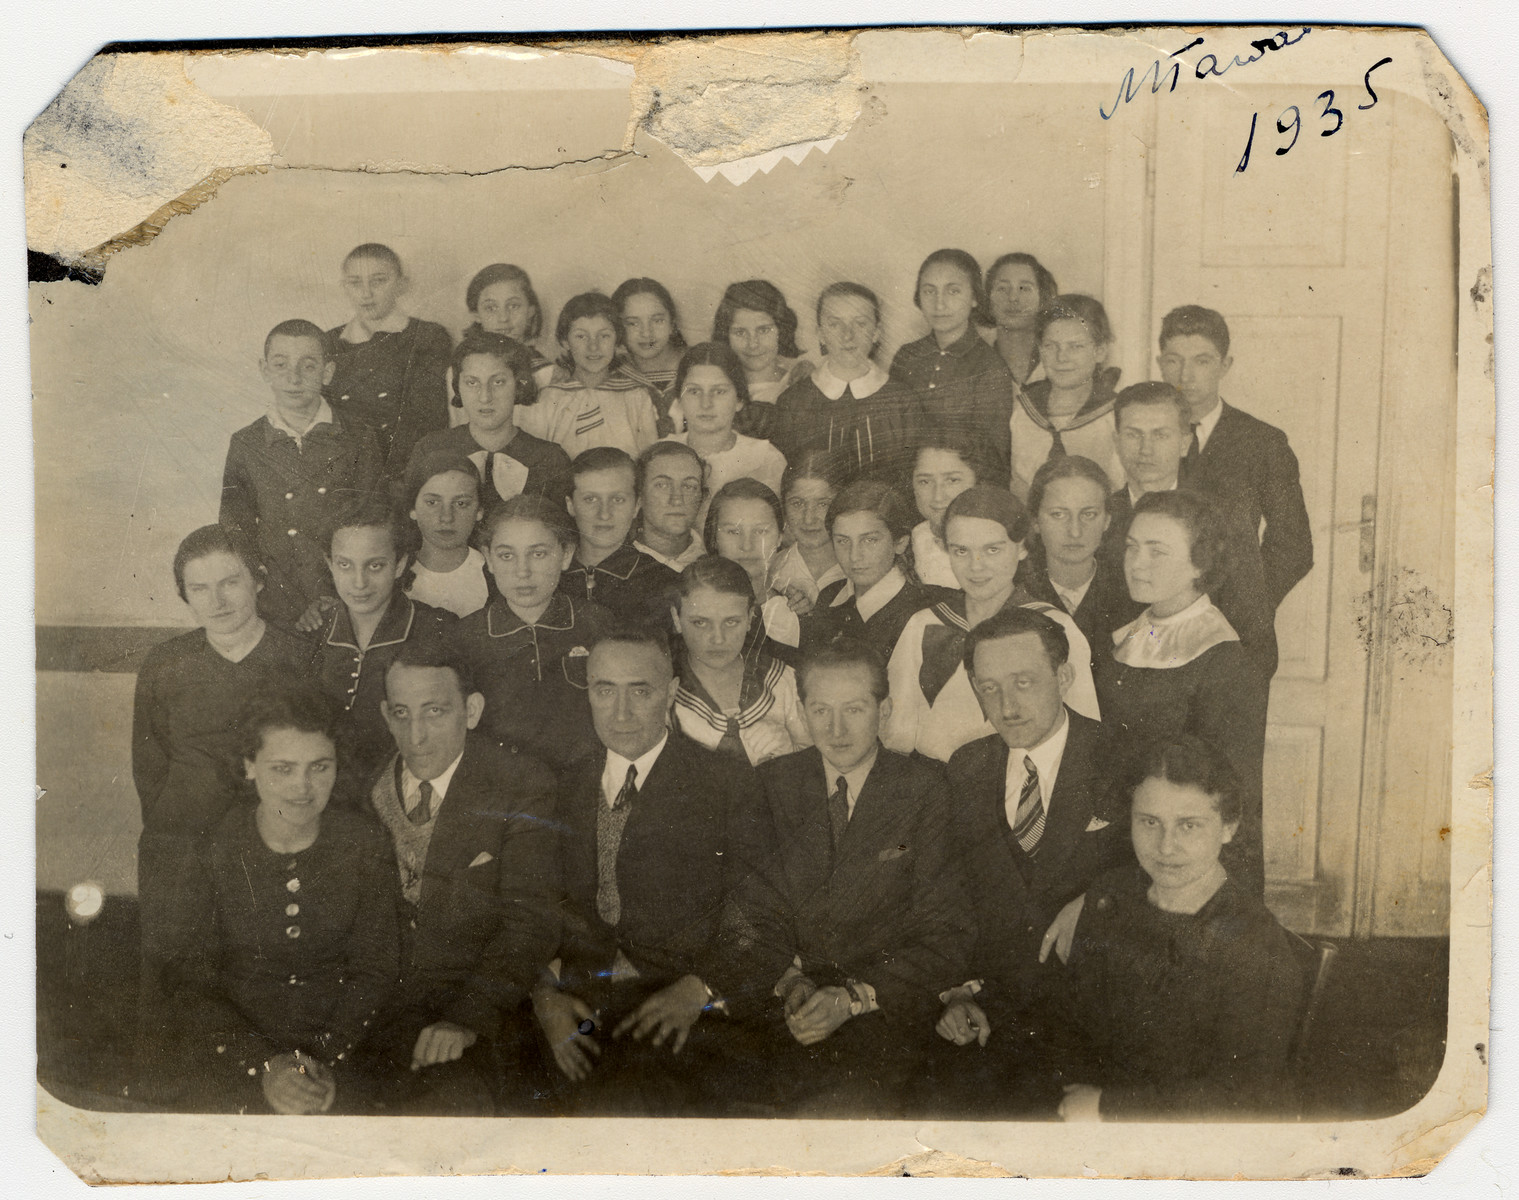 Students and teachers in the Jewish Gymnasium in Mlawa.  Seated in the first row are Dr. Rosenman (second from left), principal Icchak Hirszhorn (third from left) and Issachar Fater (fourth).